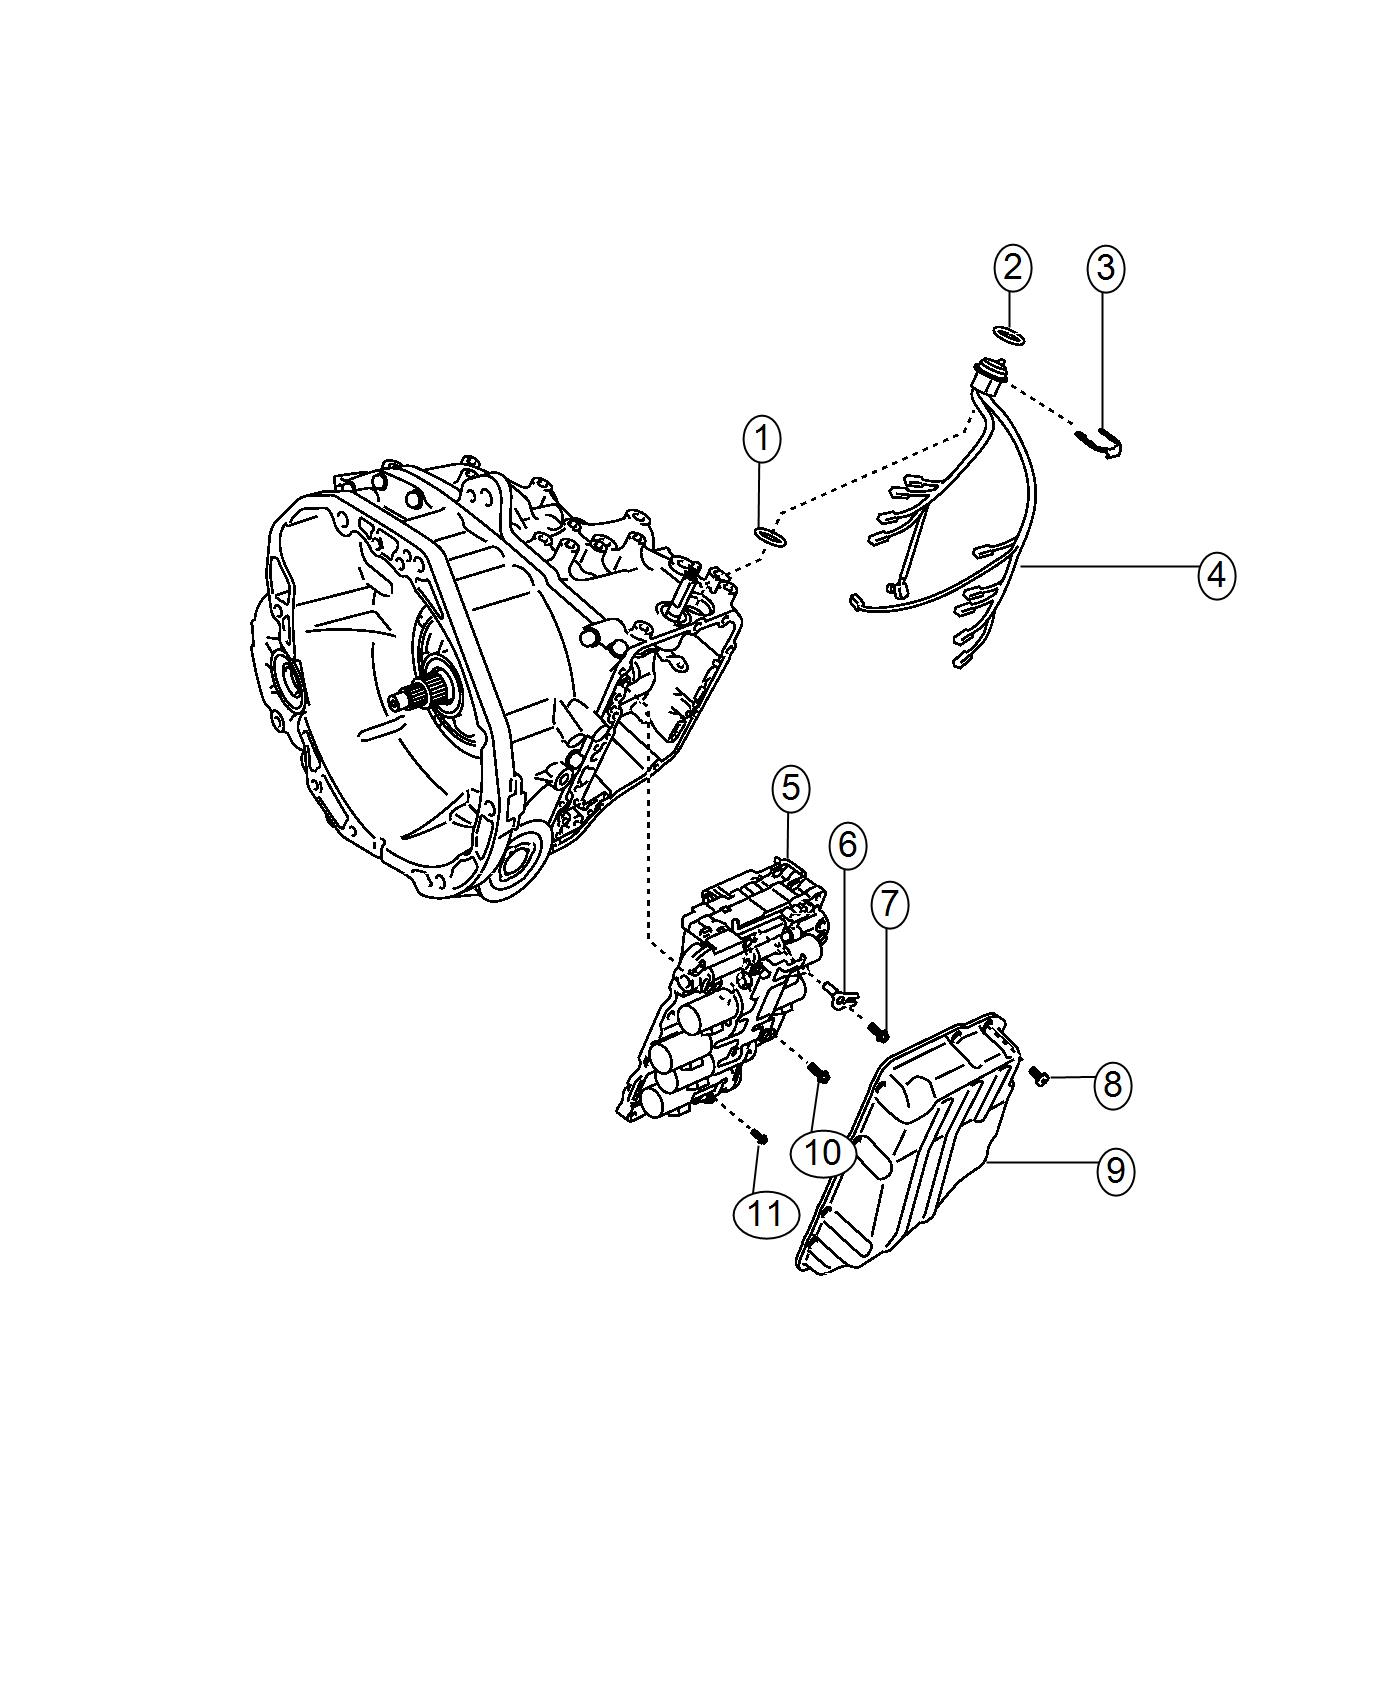 Jeep Compass Wiring. Transmission. Export. [stop-start